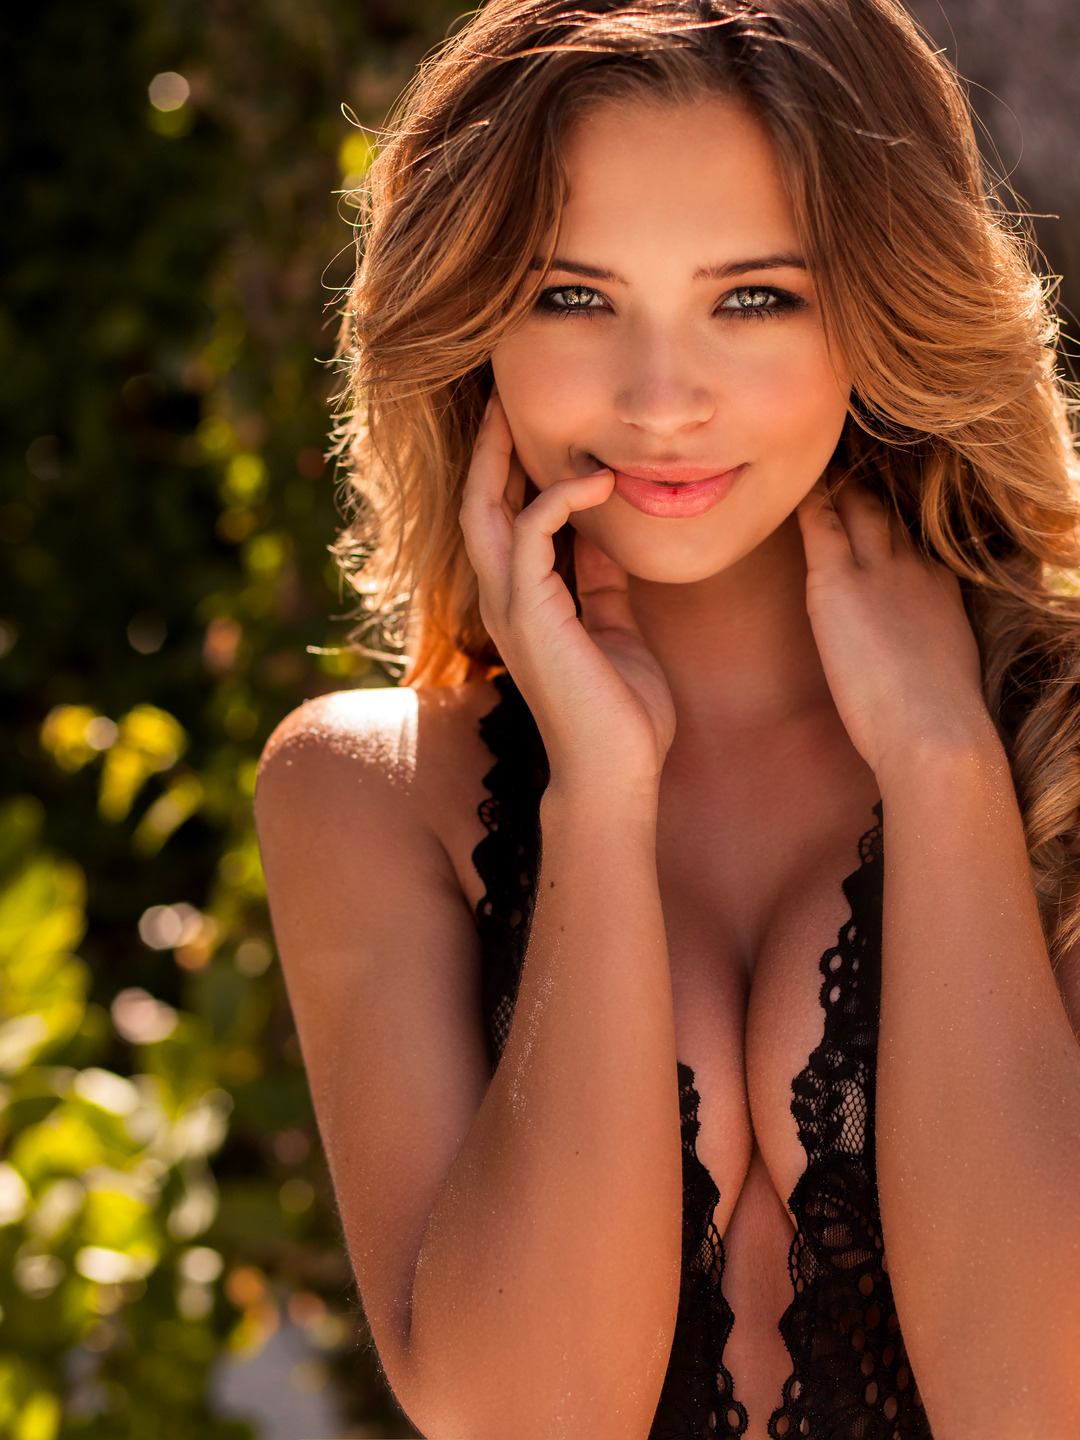 sandra mod com Sandra Kubicka Appreciation Thread (pics) (hnnggg) - Bodybuilding.com Forums